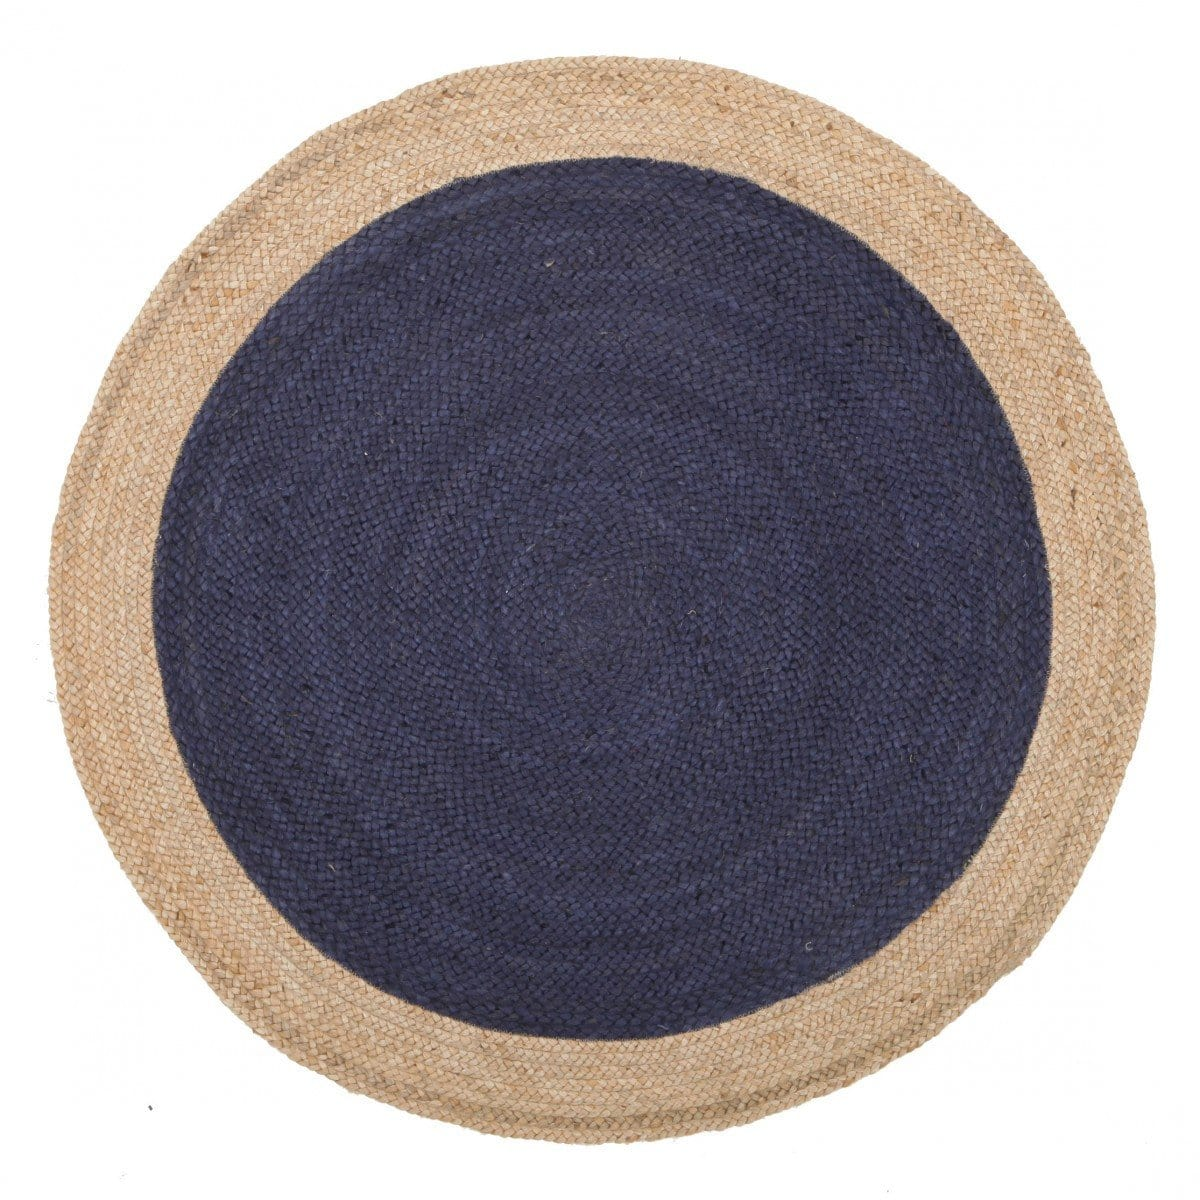 in star best clarksville shipped rug and pinterest mercantile purchased rugs can the country earth on from braided images capitol old be primitive prim black